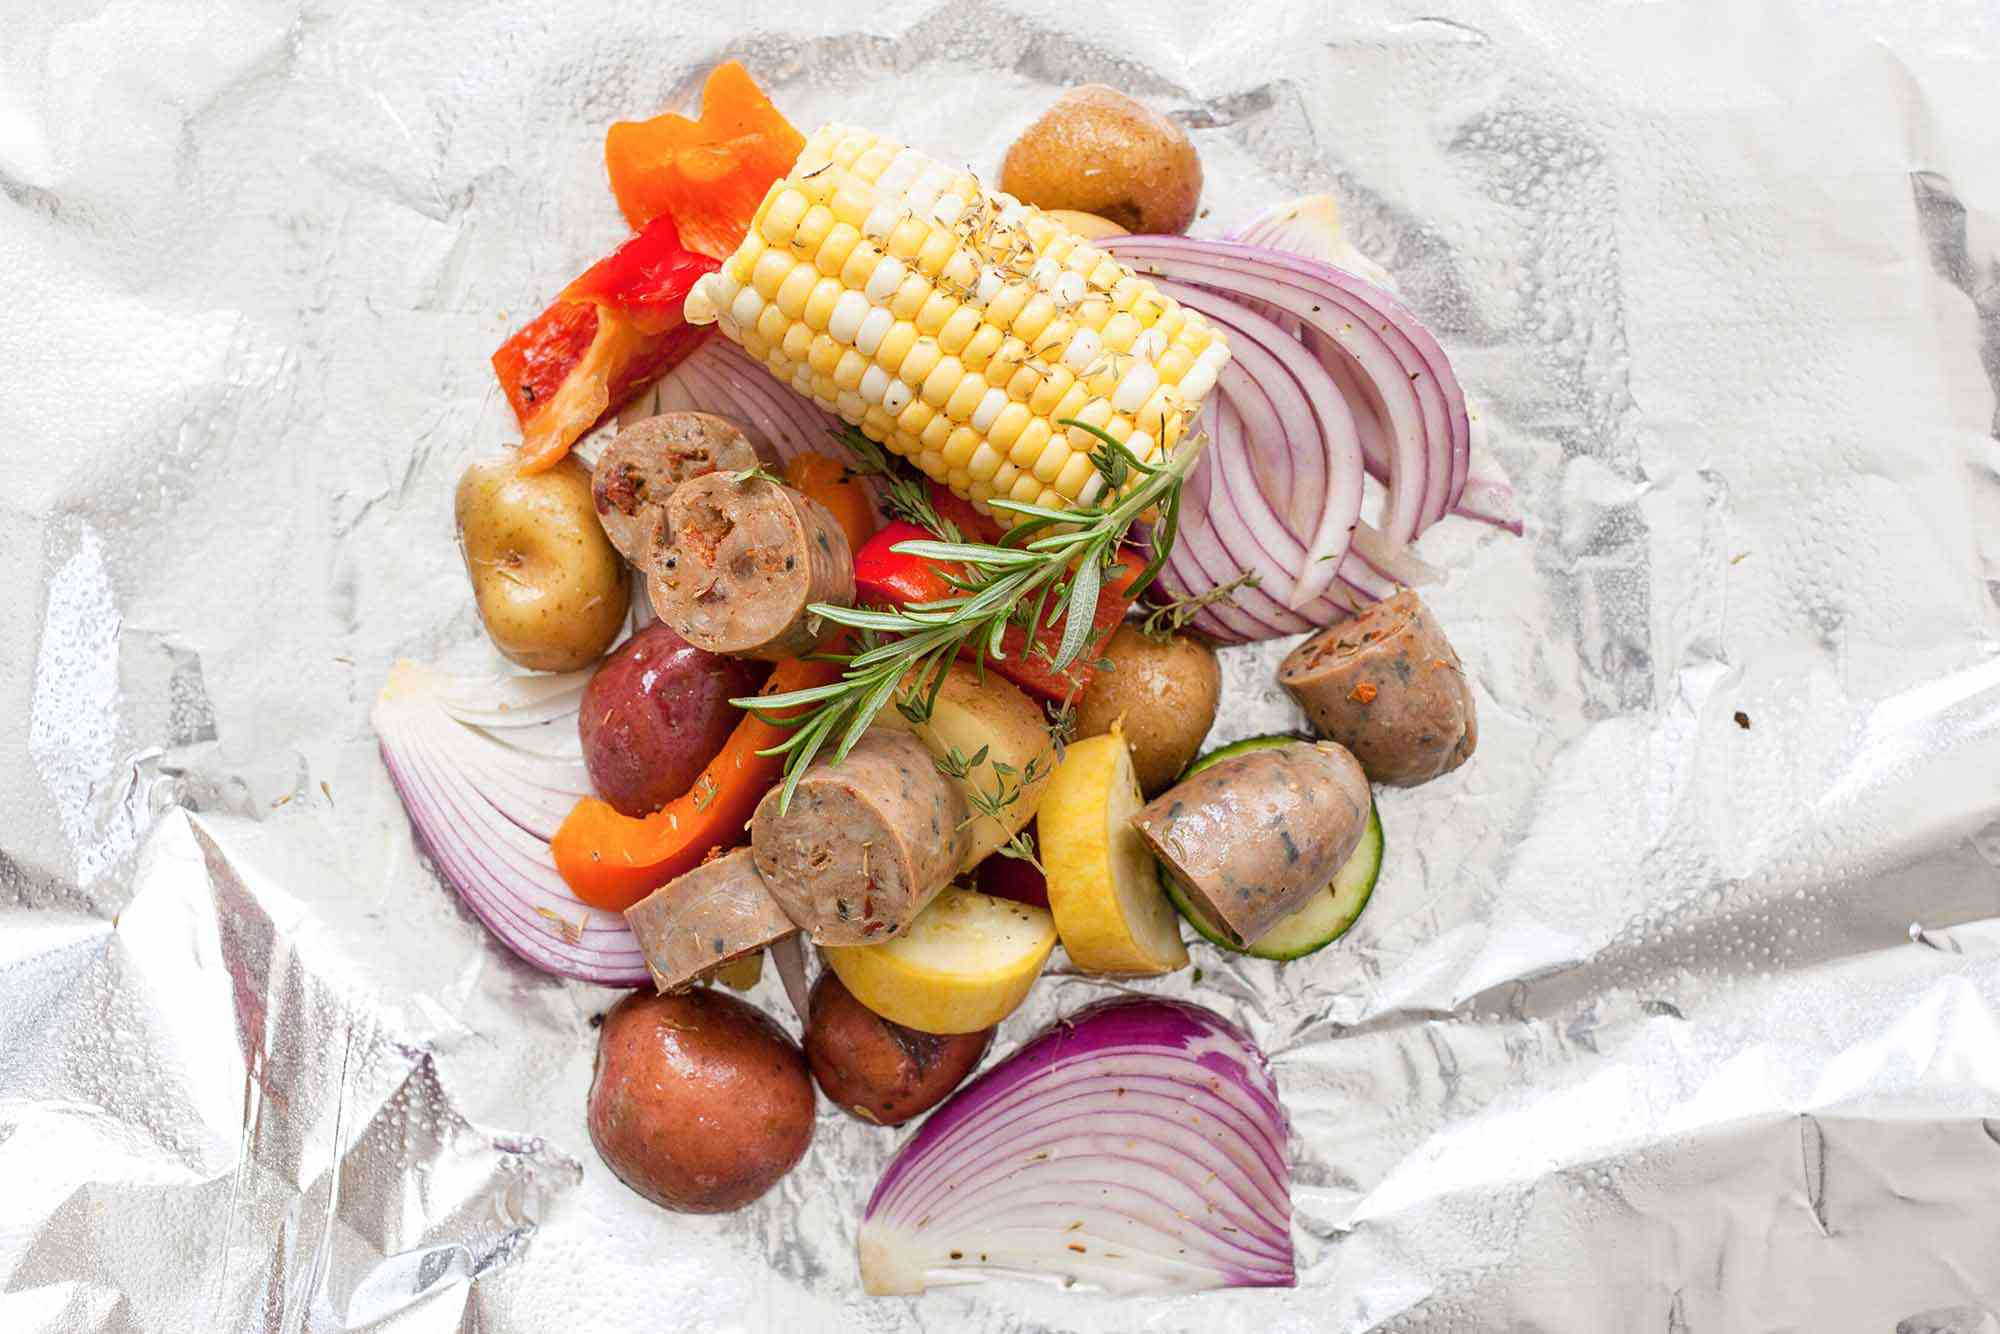 Grill Foil Packets Meal add the veggies